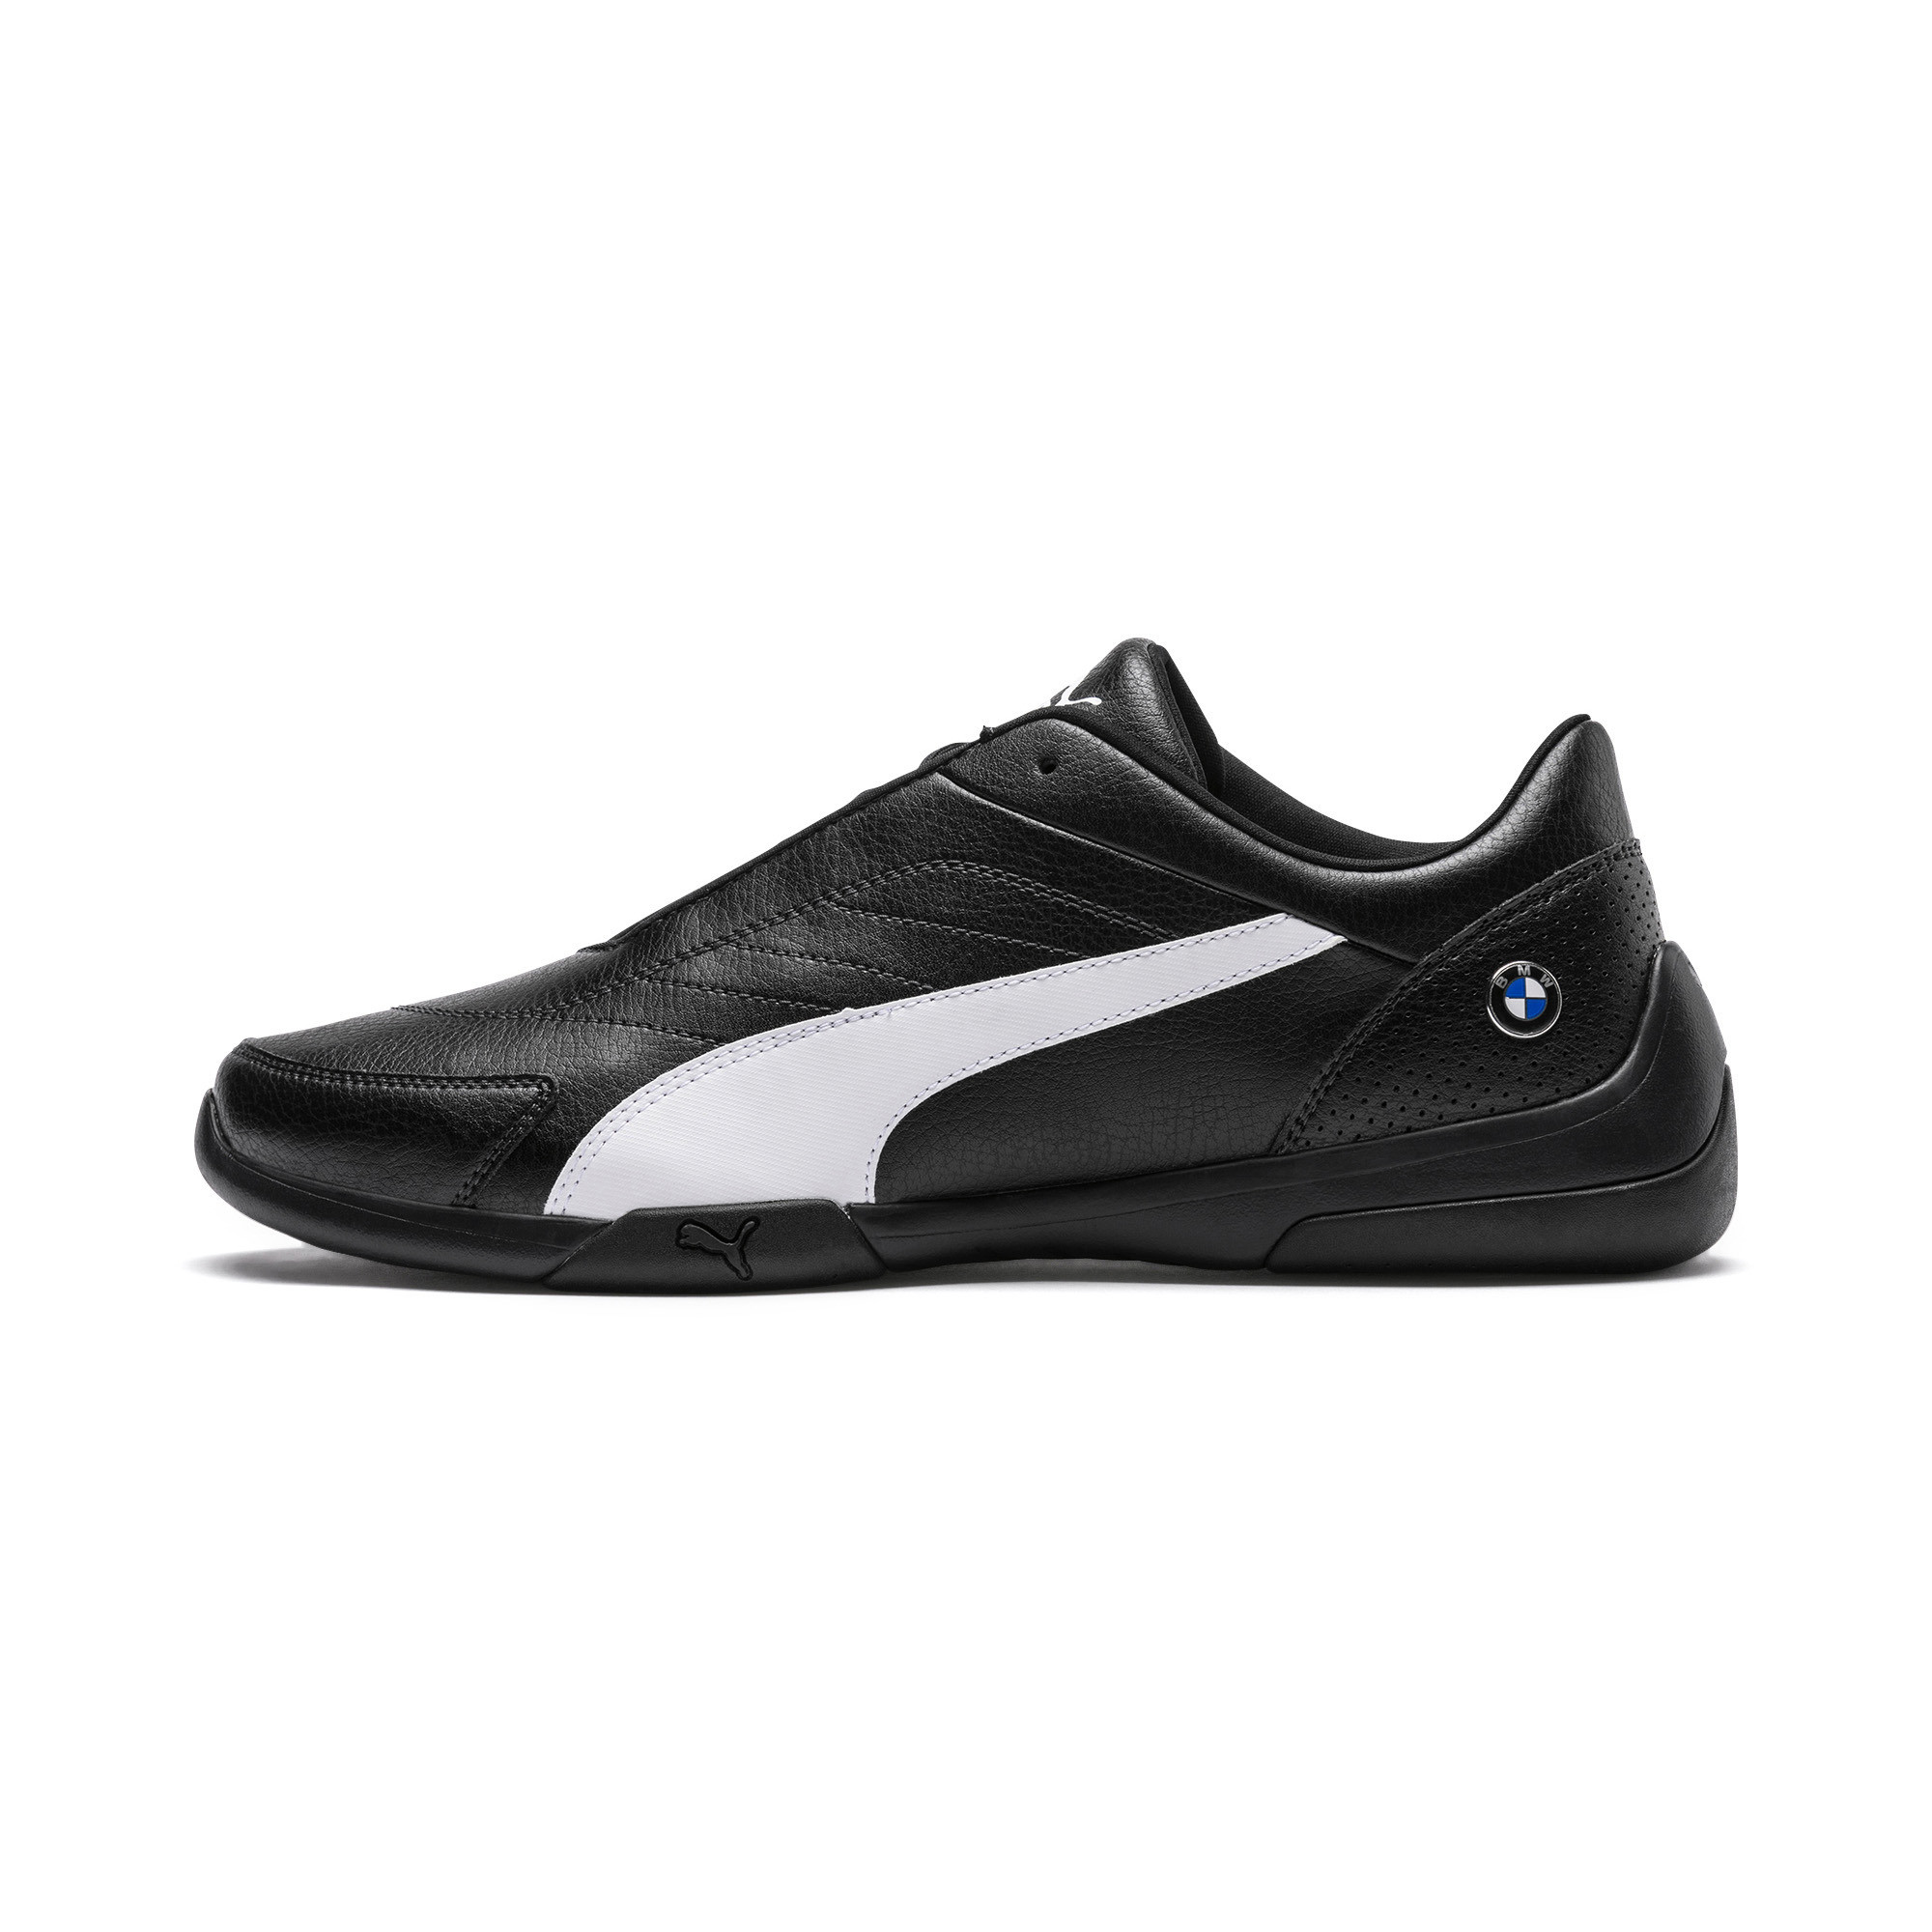 PUMA-BMW-M-Motorsport-Kart-Cat-III-Shoes-Men-Shoe-Auto thumbnail 8